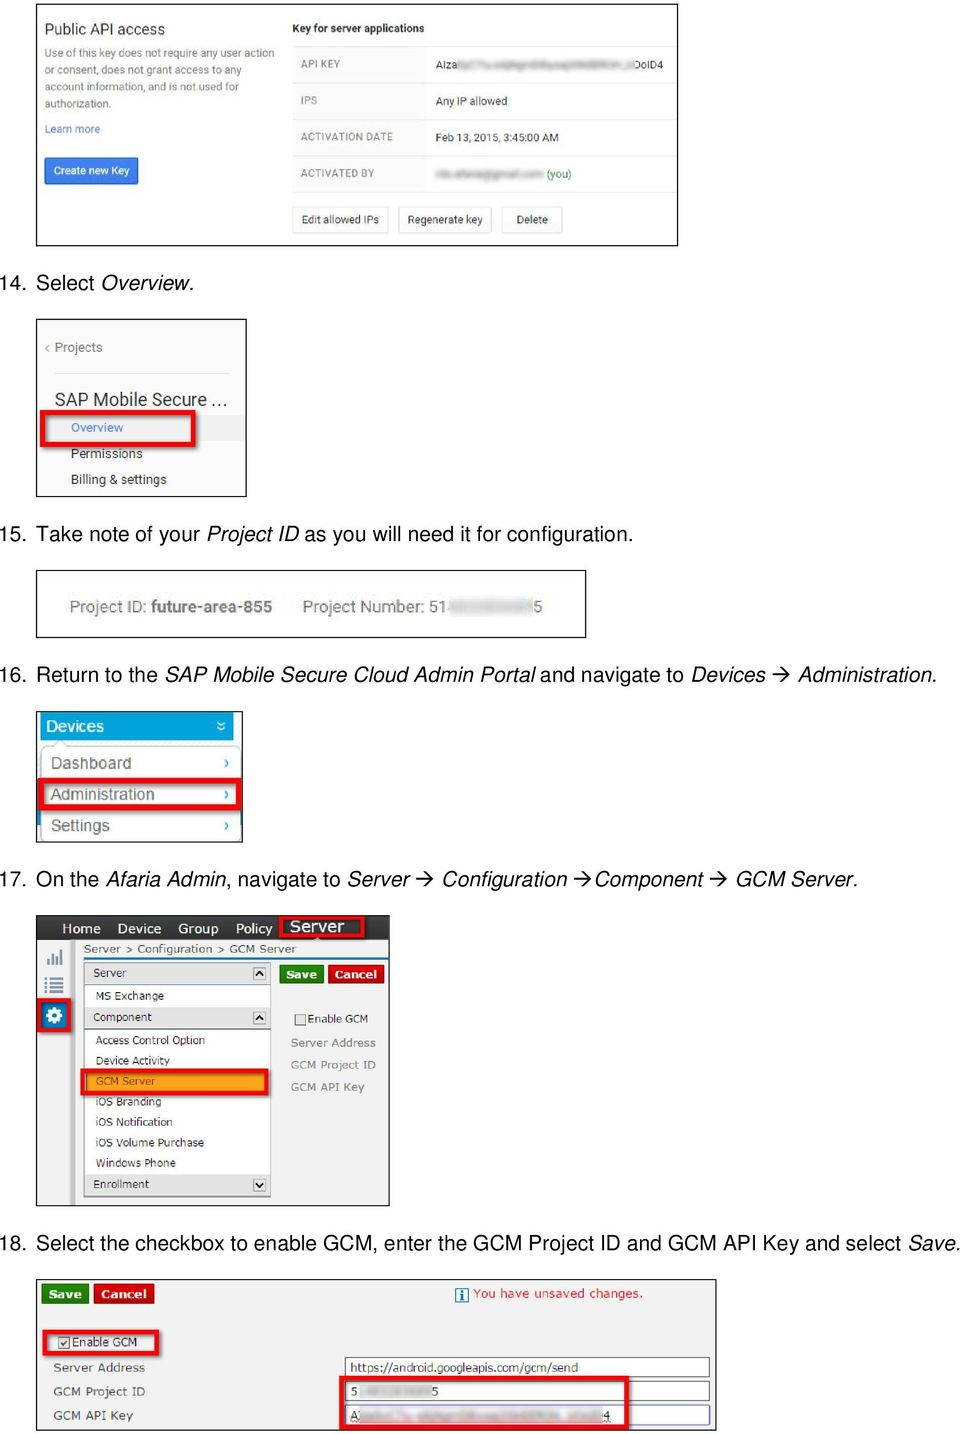 Return to the SAP Mobile Secure Cloud Admin Portal and navigate to Devices Administration.